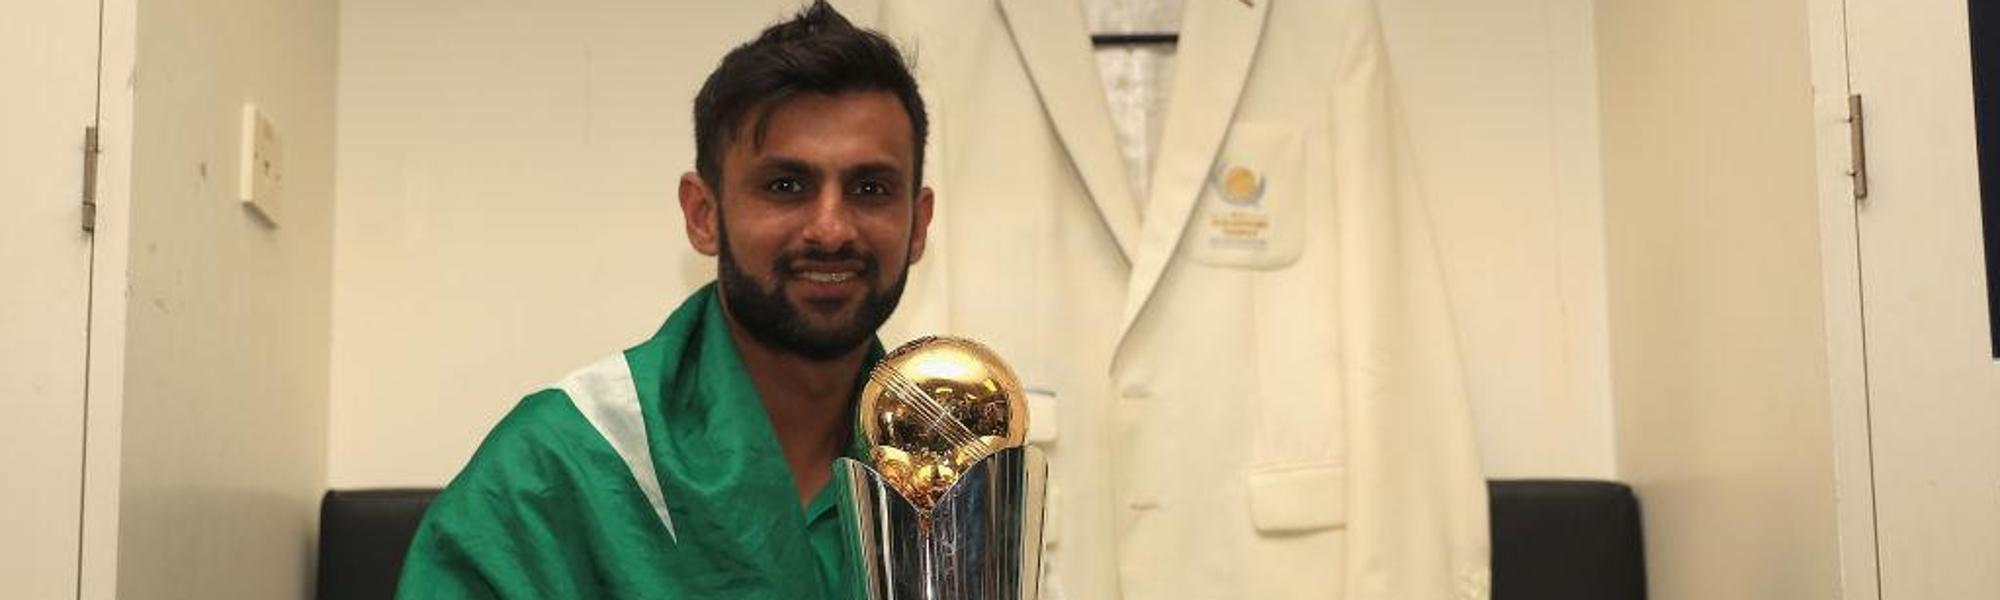 Malik with the Champions Trophy in 2017